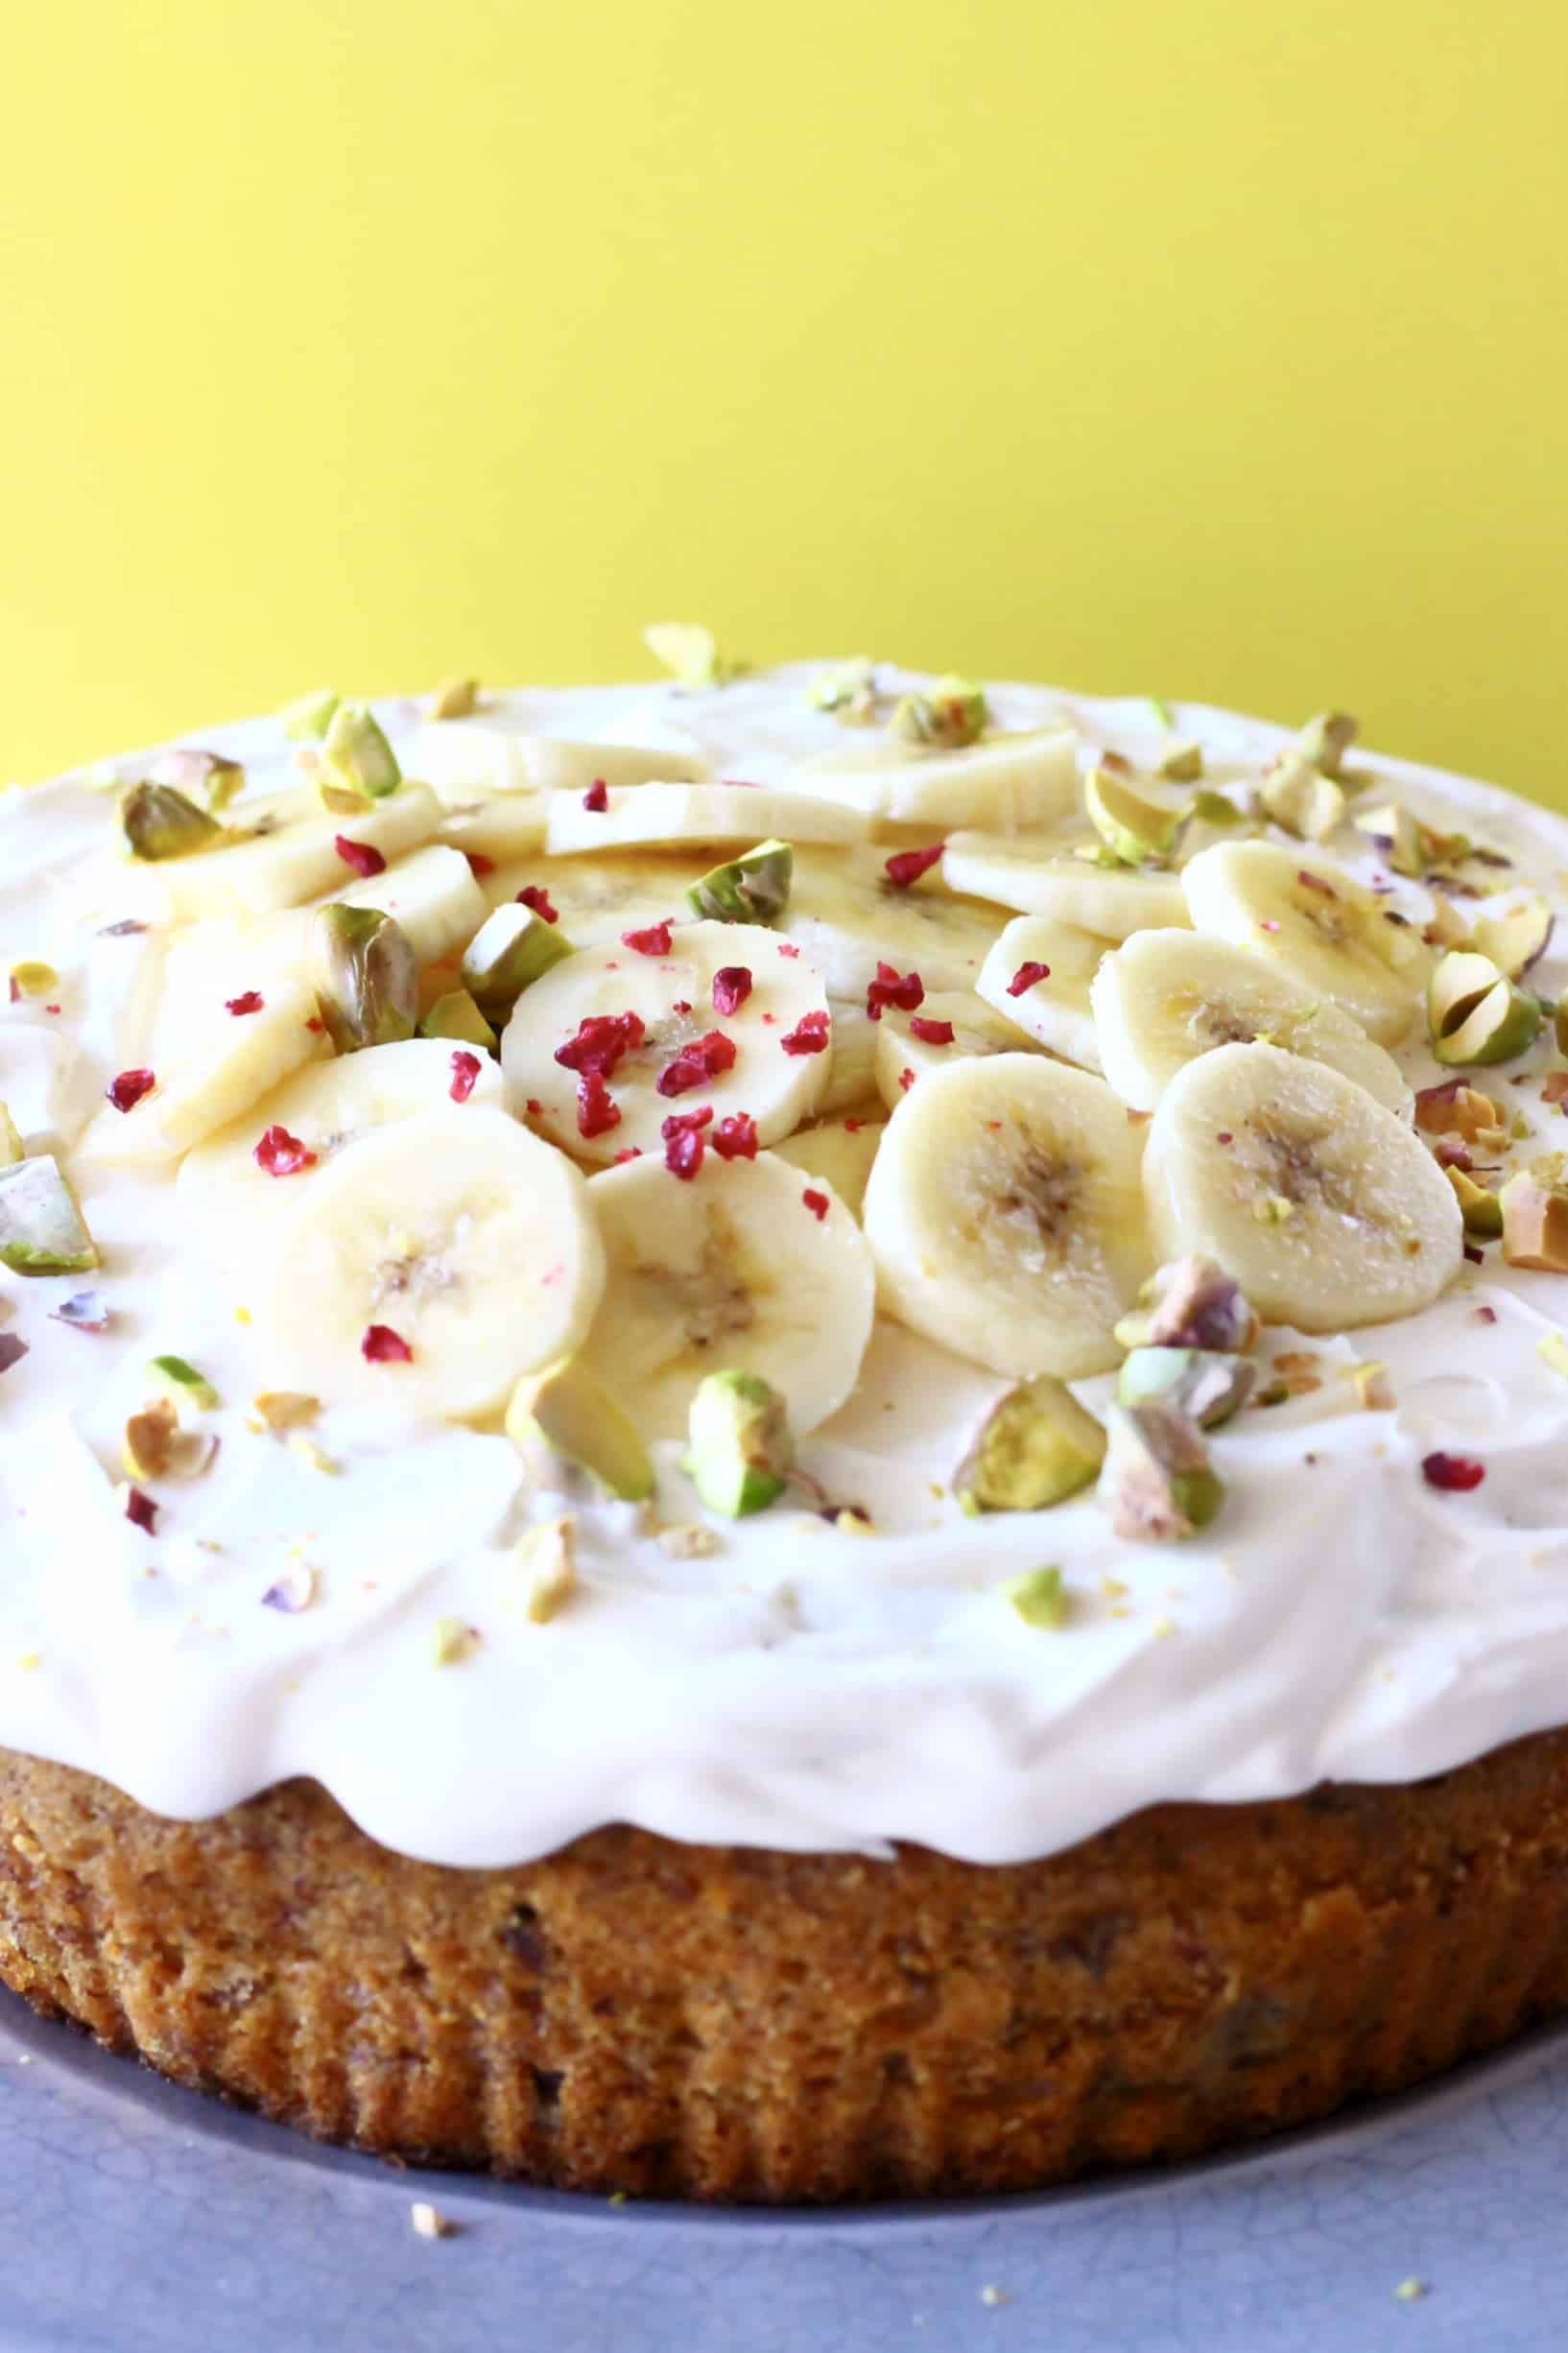 A gluten-free vegan banana cake topped with vegan cream cheese  frosting and sliced bananas